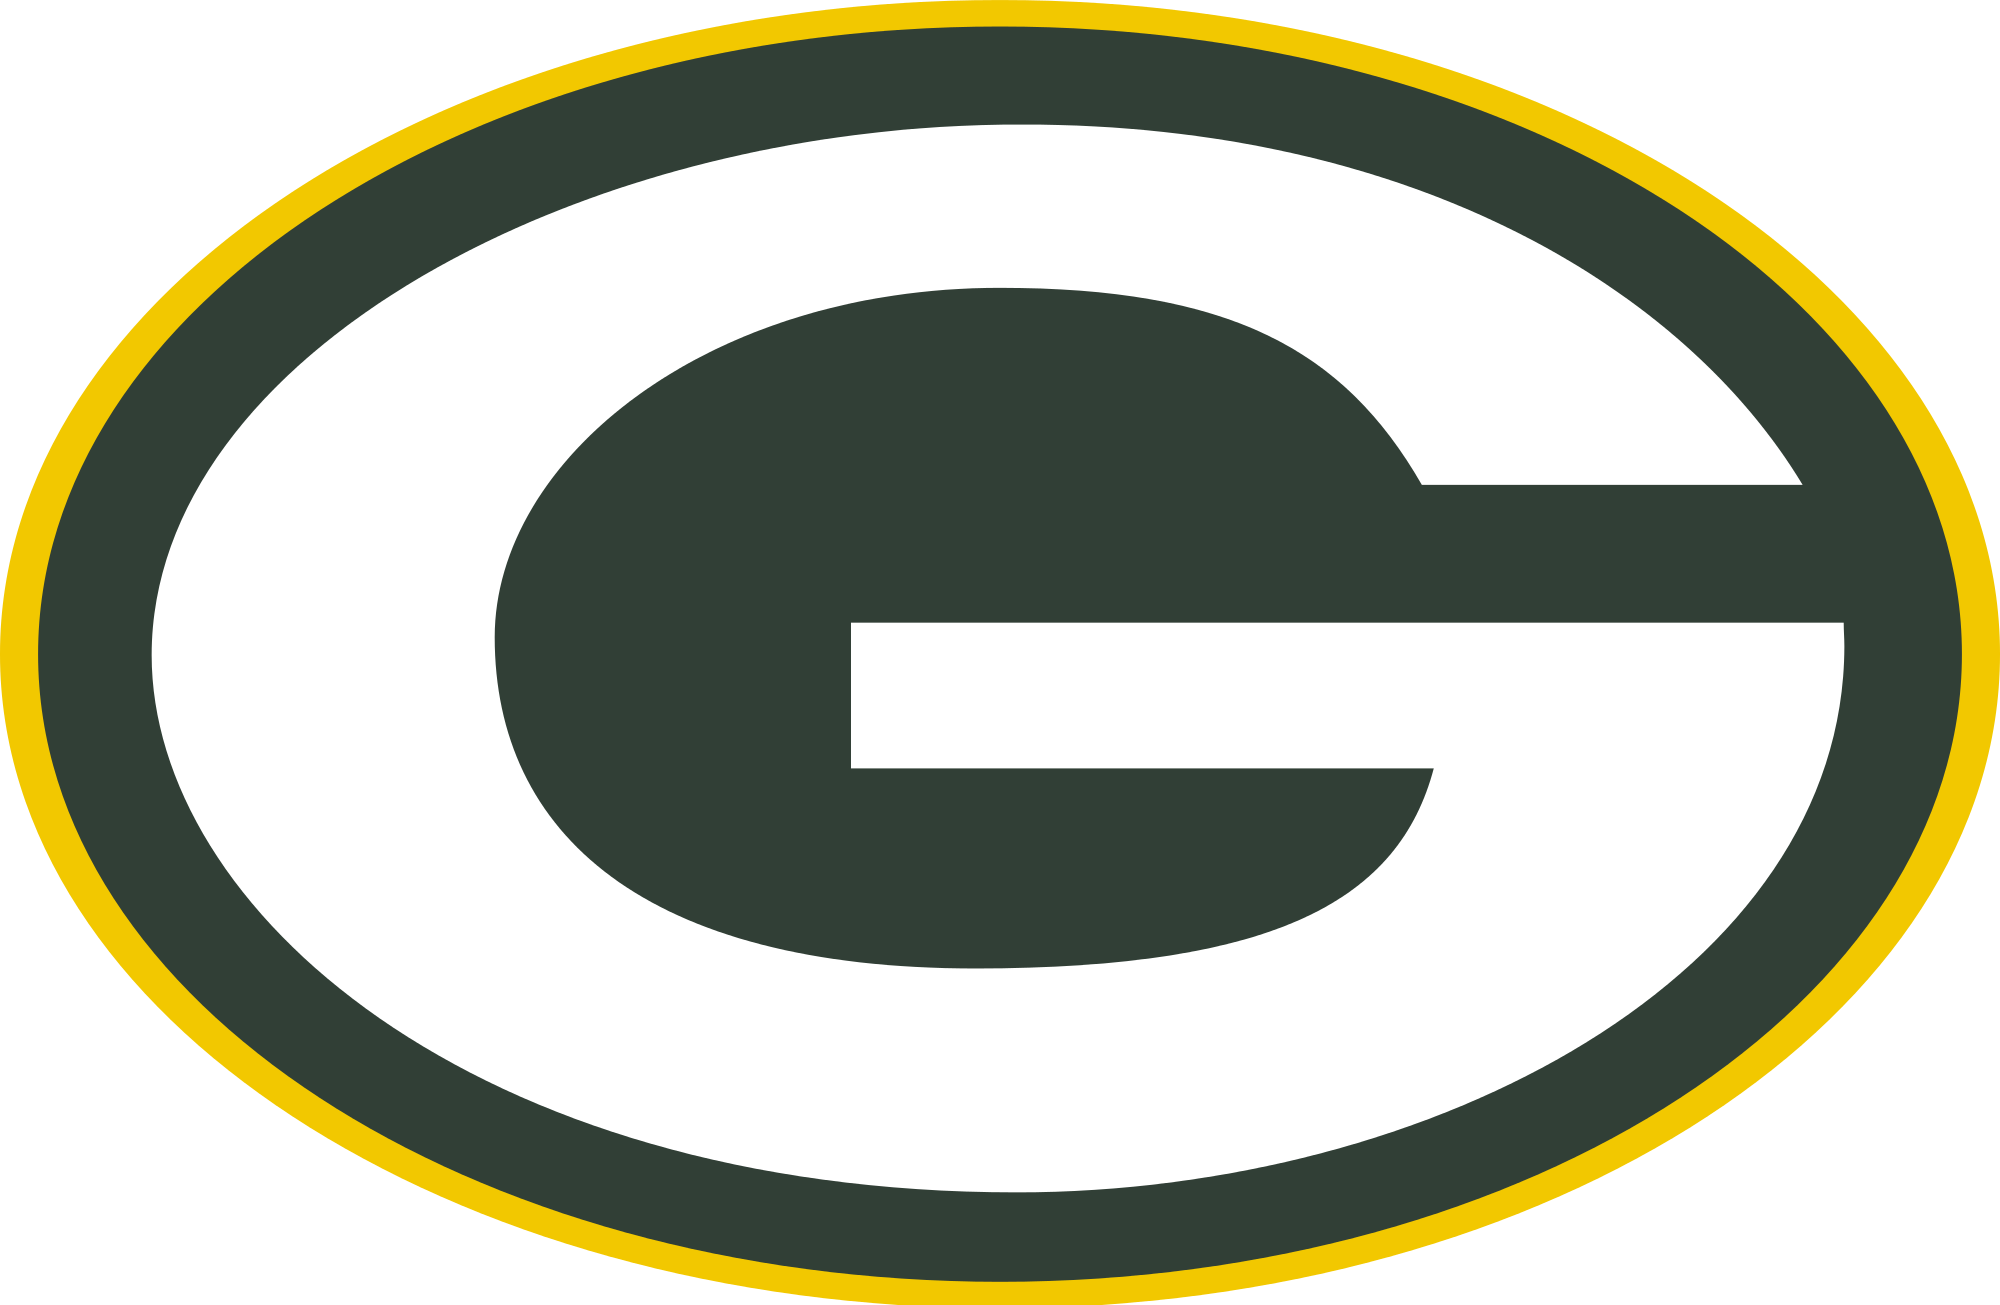 Impertinent image pertaining to green bay packers printable logo